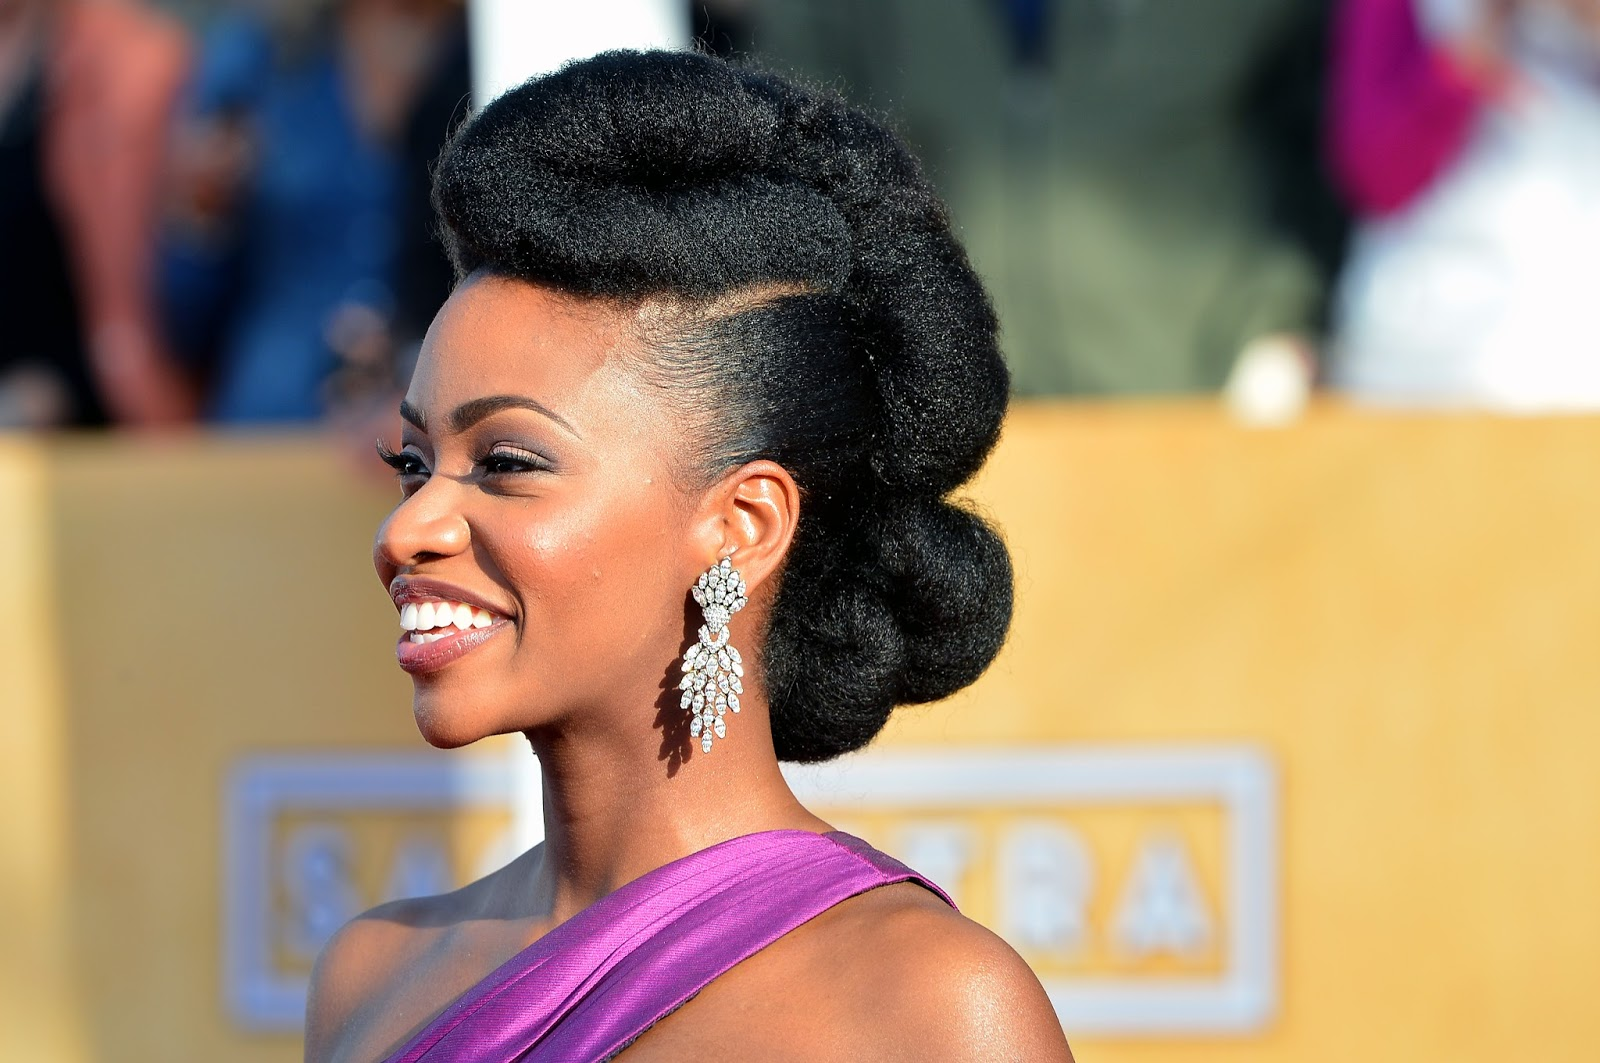 teyonah parris marriedteyonah parris instagram, teyonah parris movies and tv shows, teyonah parris, teyonah parris age, teyonah parris bio, teyonah parris biography, teyonah parris chiraq, teyonah parris date of birth, teyonah parris hair, teyonah parris engagement, teyonah parris natural hair, teyonah parris birthdate, teyonah parris husband, teyonah parris hairstyles, teyonah parris boyfriend, teyonah parris body, teyonah parris married, teyonah parris hair regimen, teyonah parris birthday, teyonah parris booty